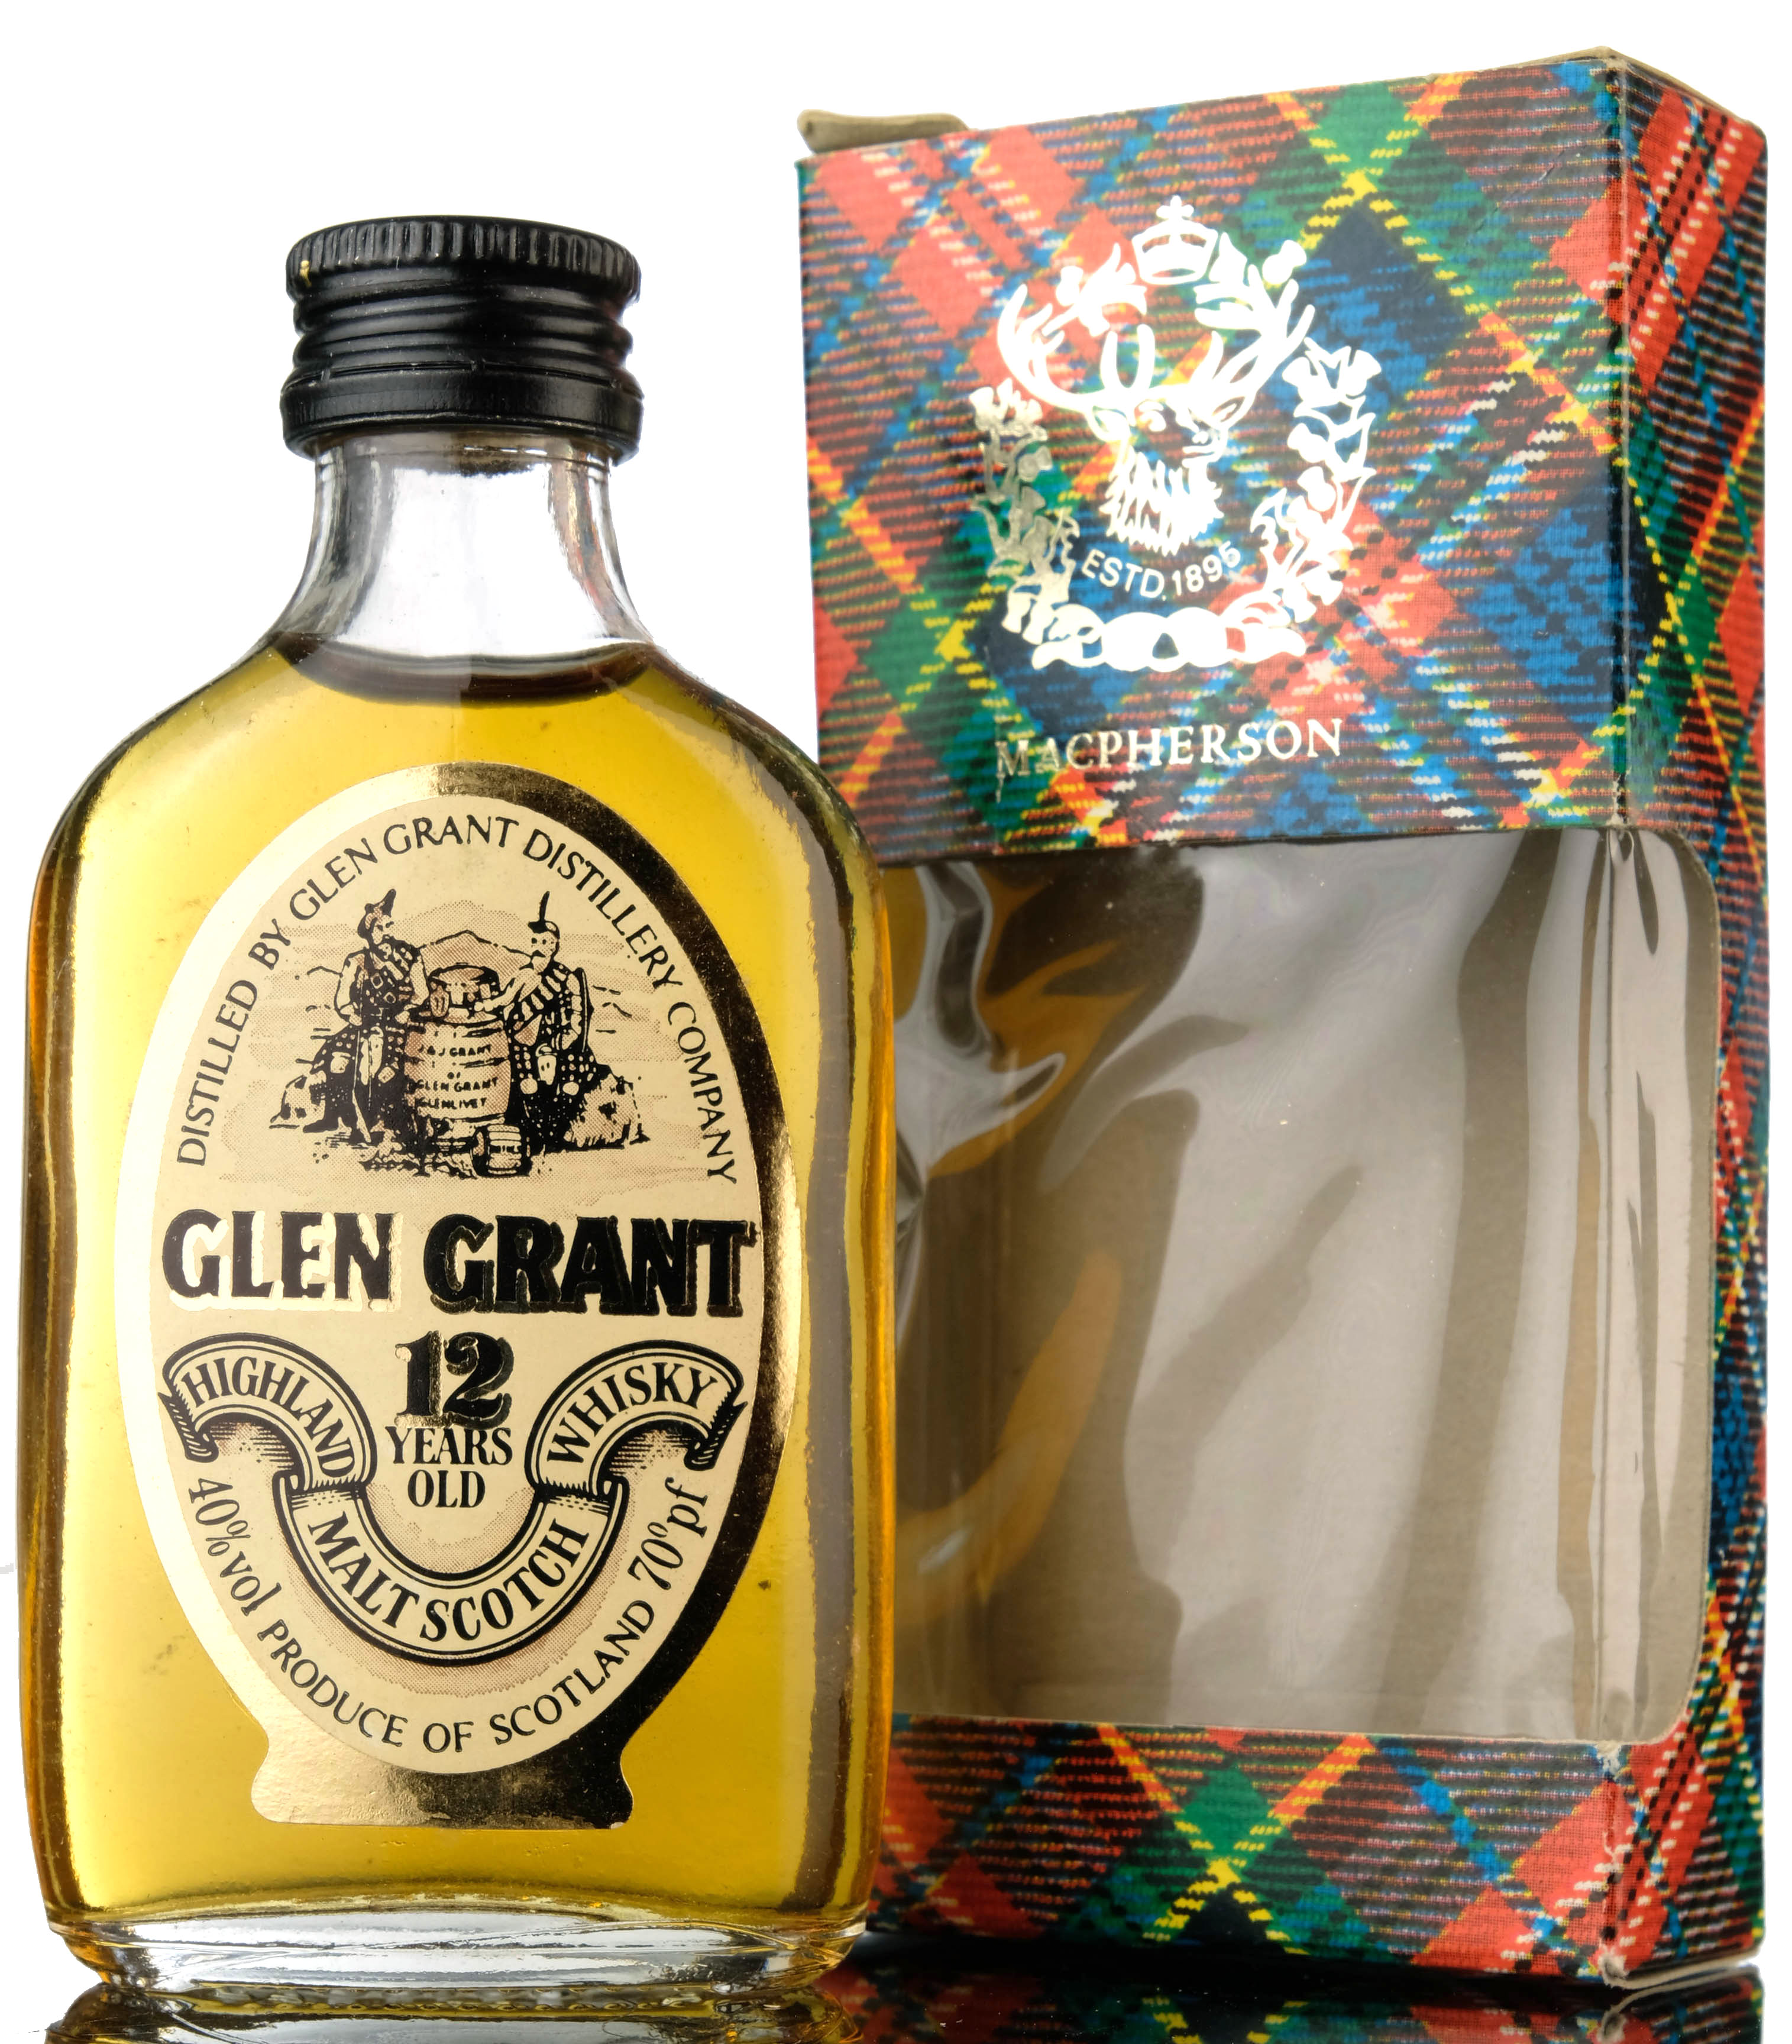 glen grant 12 year old miniature